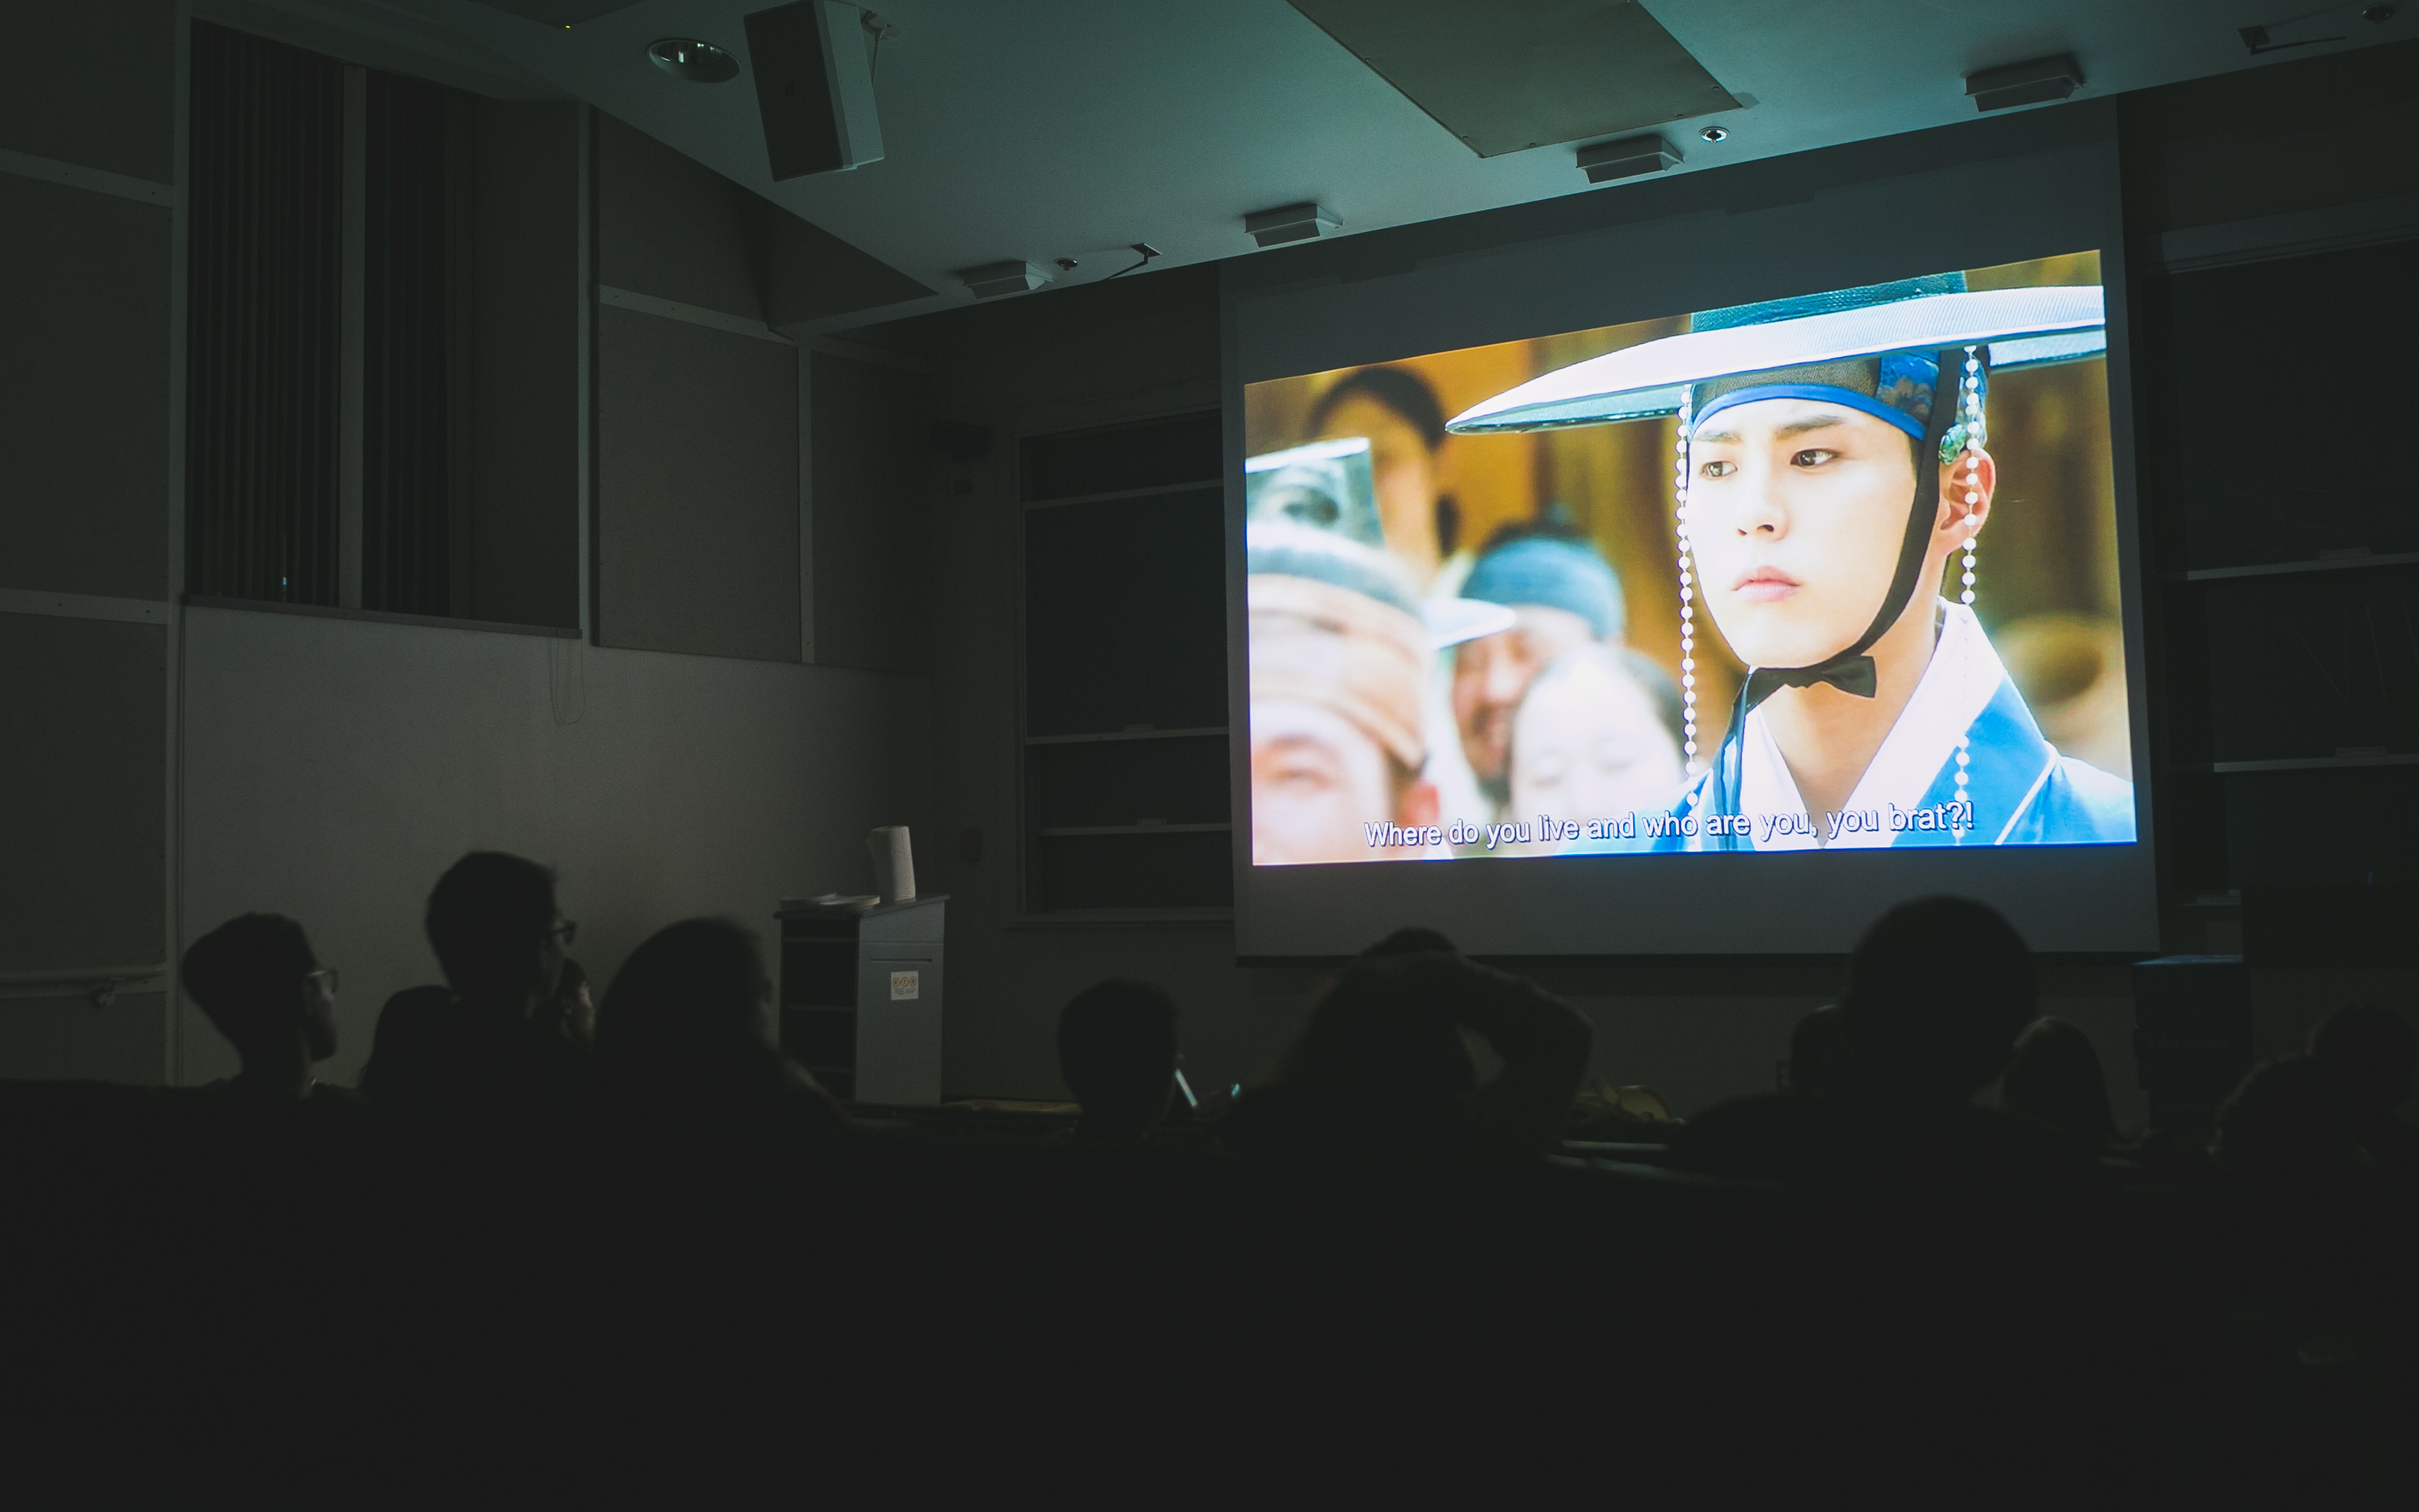 """Recap: Fans Bond Over """"Moonlight Drawn By Clouds"""" at Viki Screening + Host Your Own Collegiate Event!"""